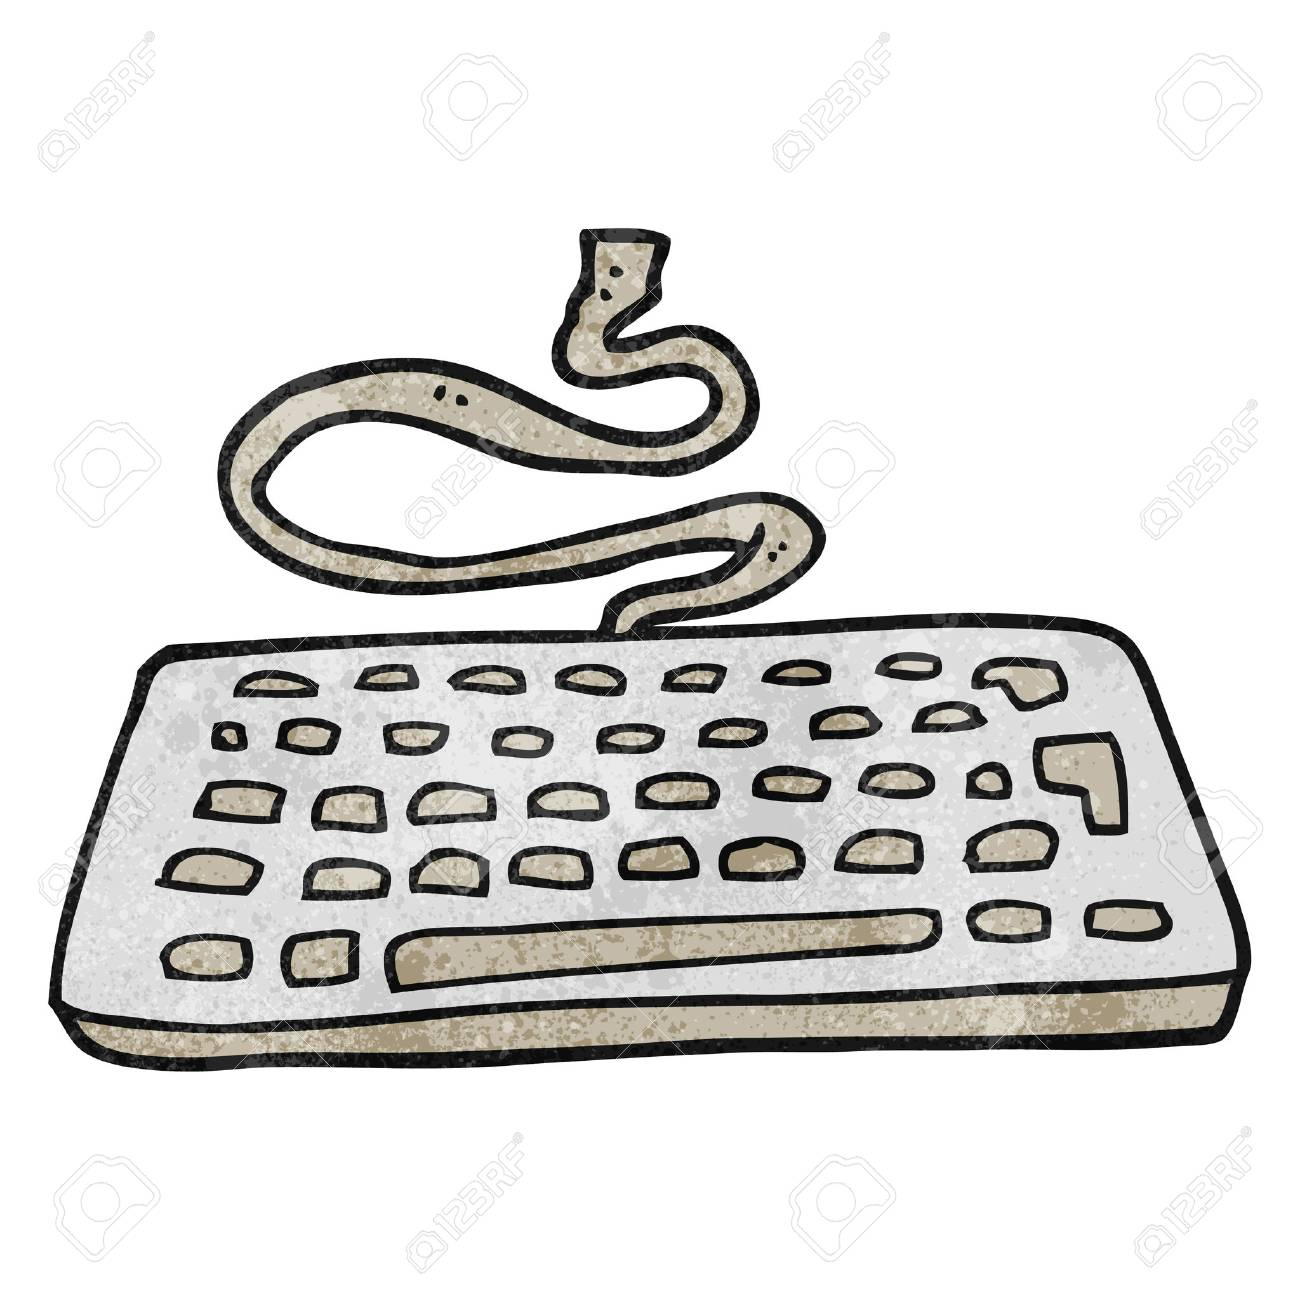 Freehand Textured Cartoon Computer Keyboard Royalty Free Cliparts Vectors And Stock Illustration Image 53910601